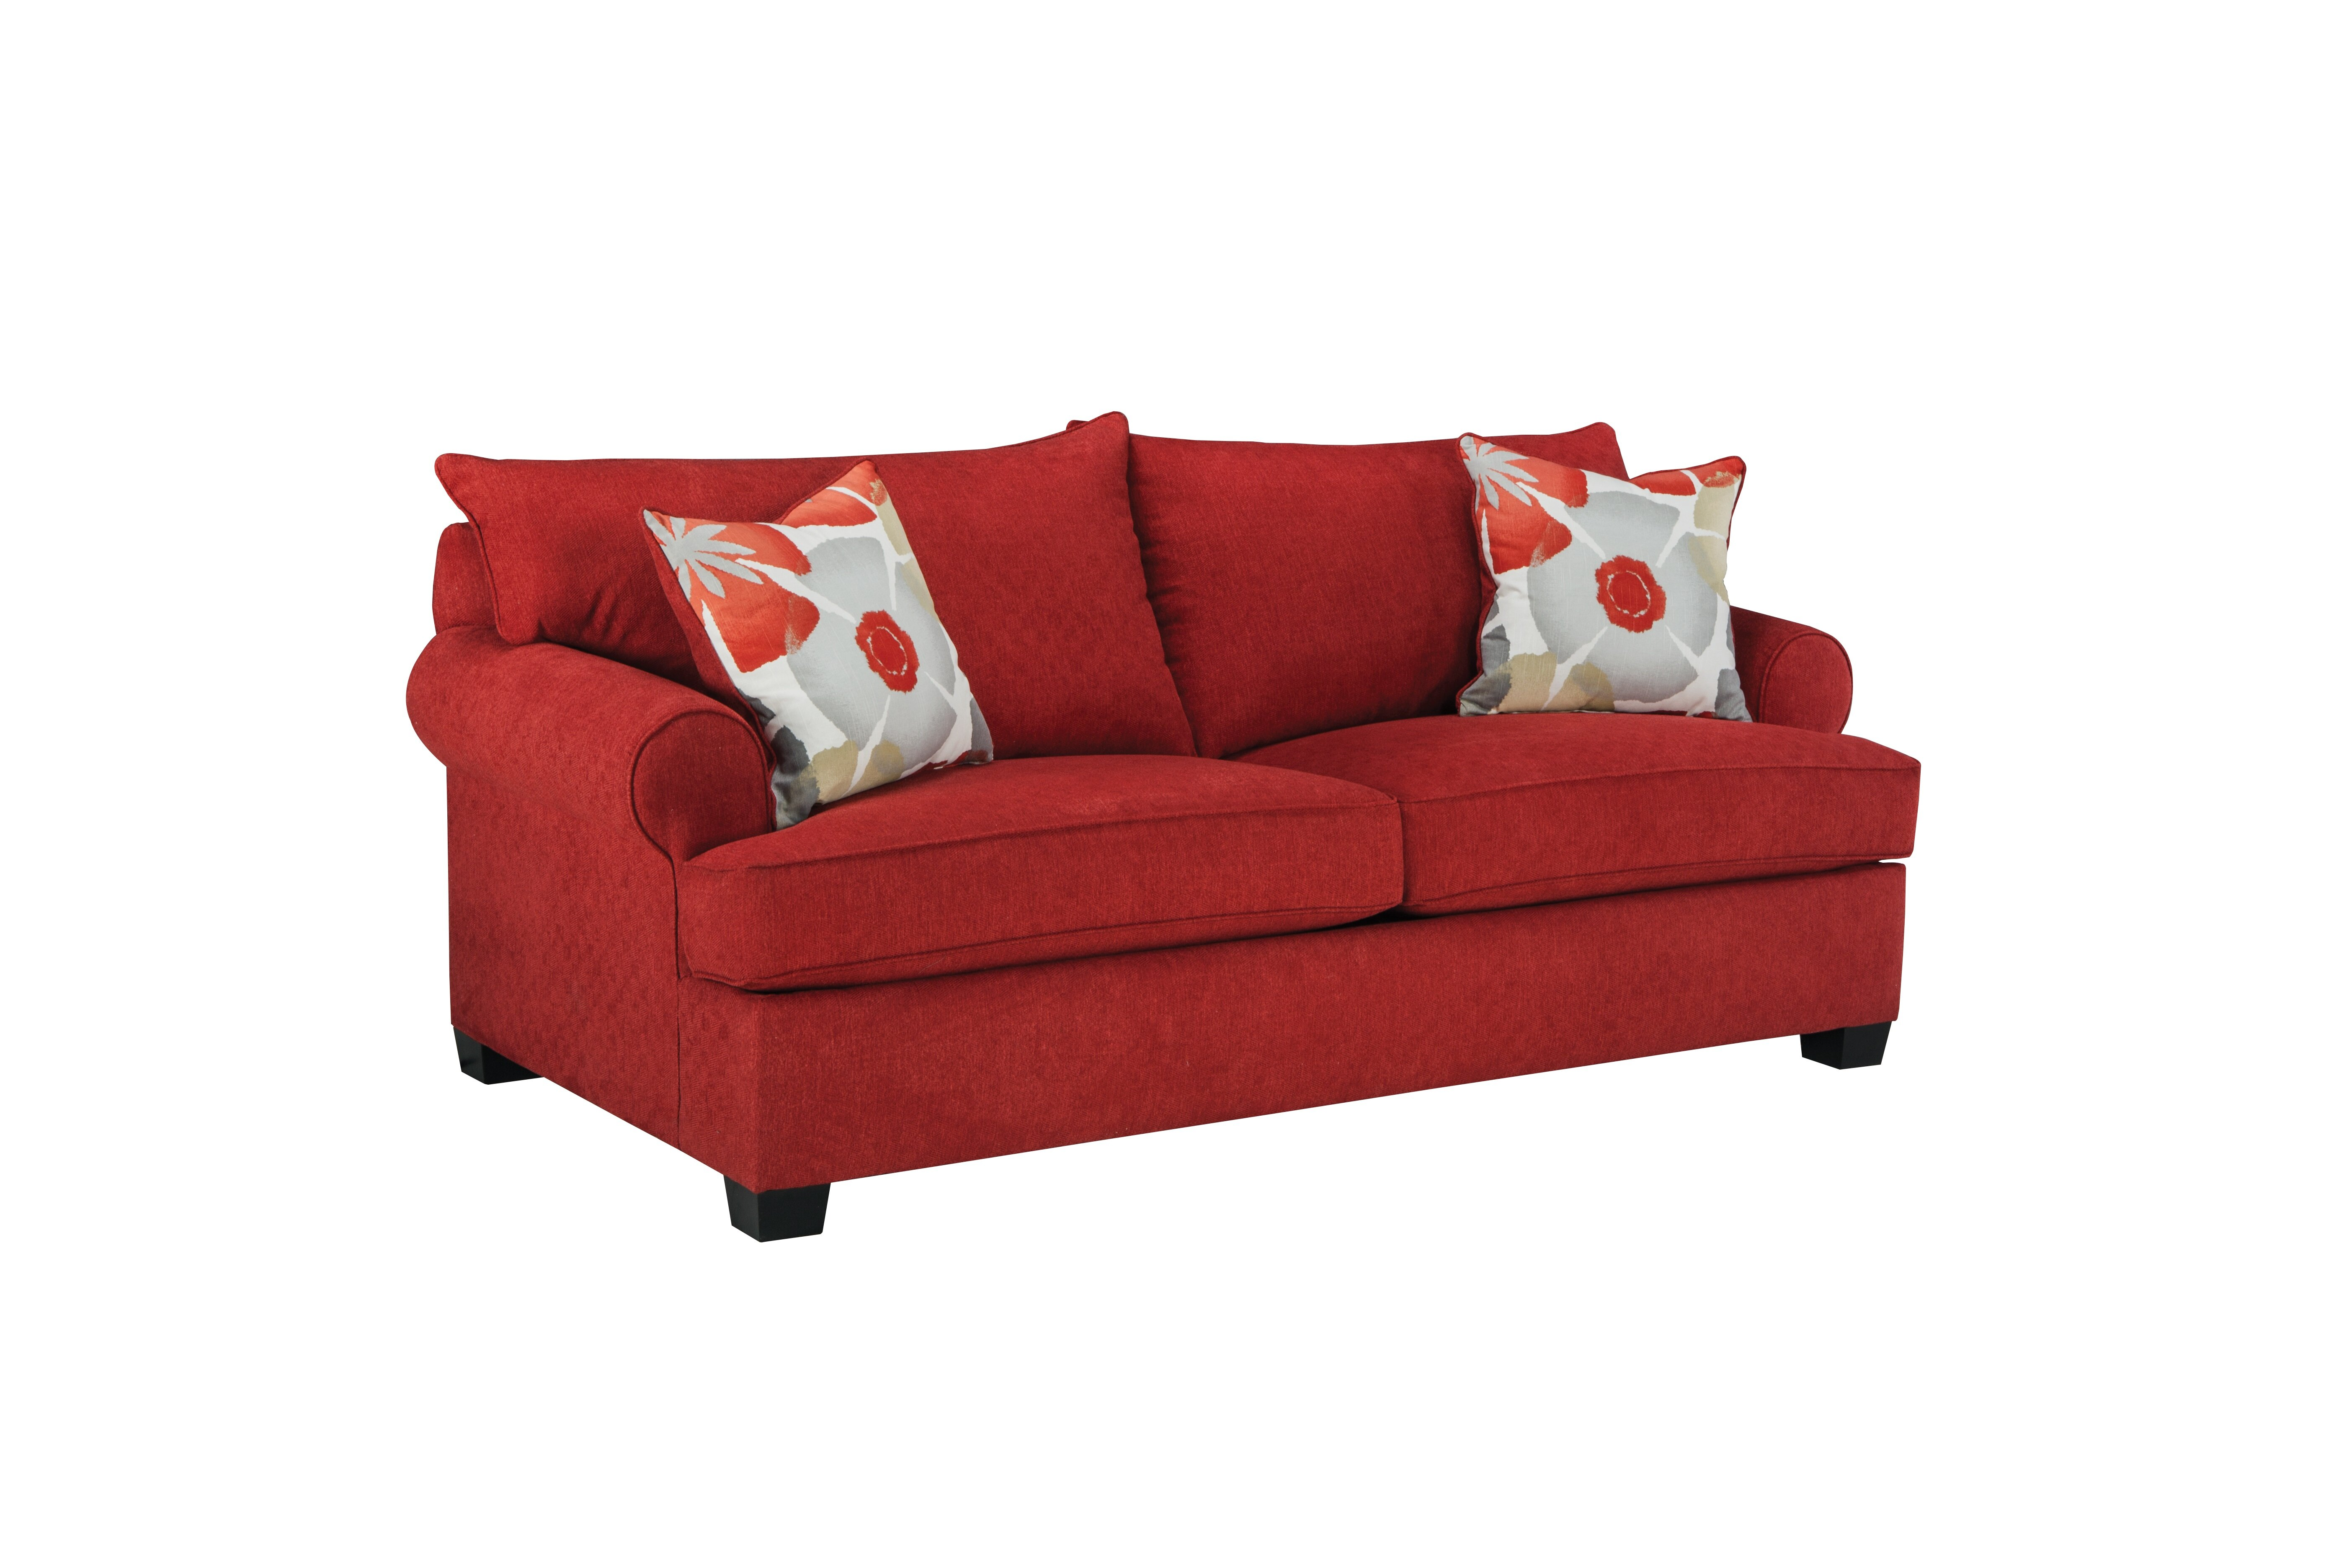 Queen Size Residential Sofa Sleeper System With Frame And